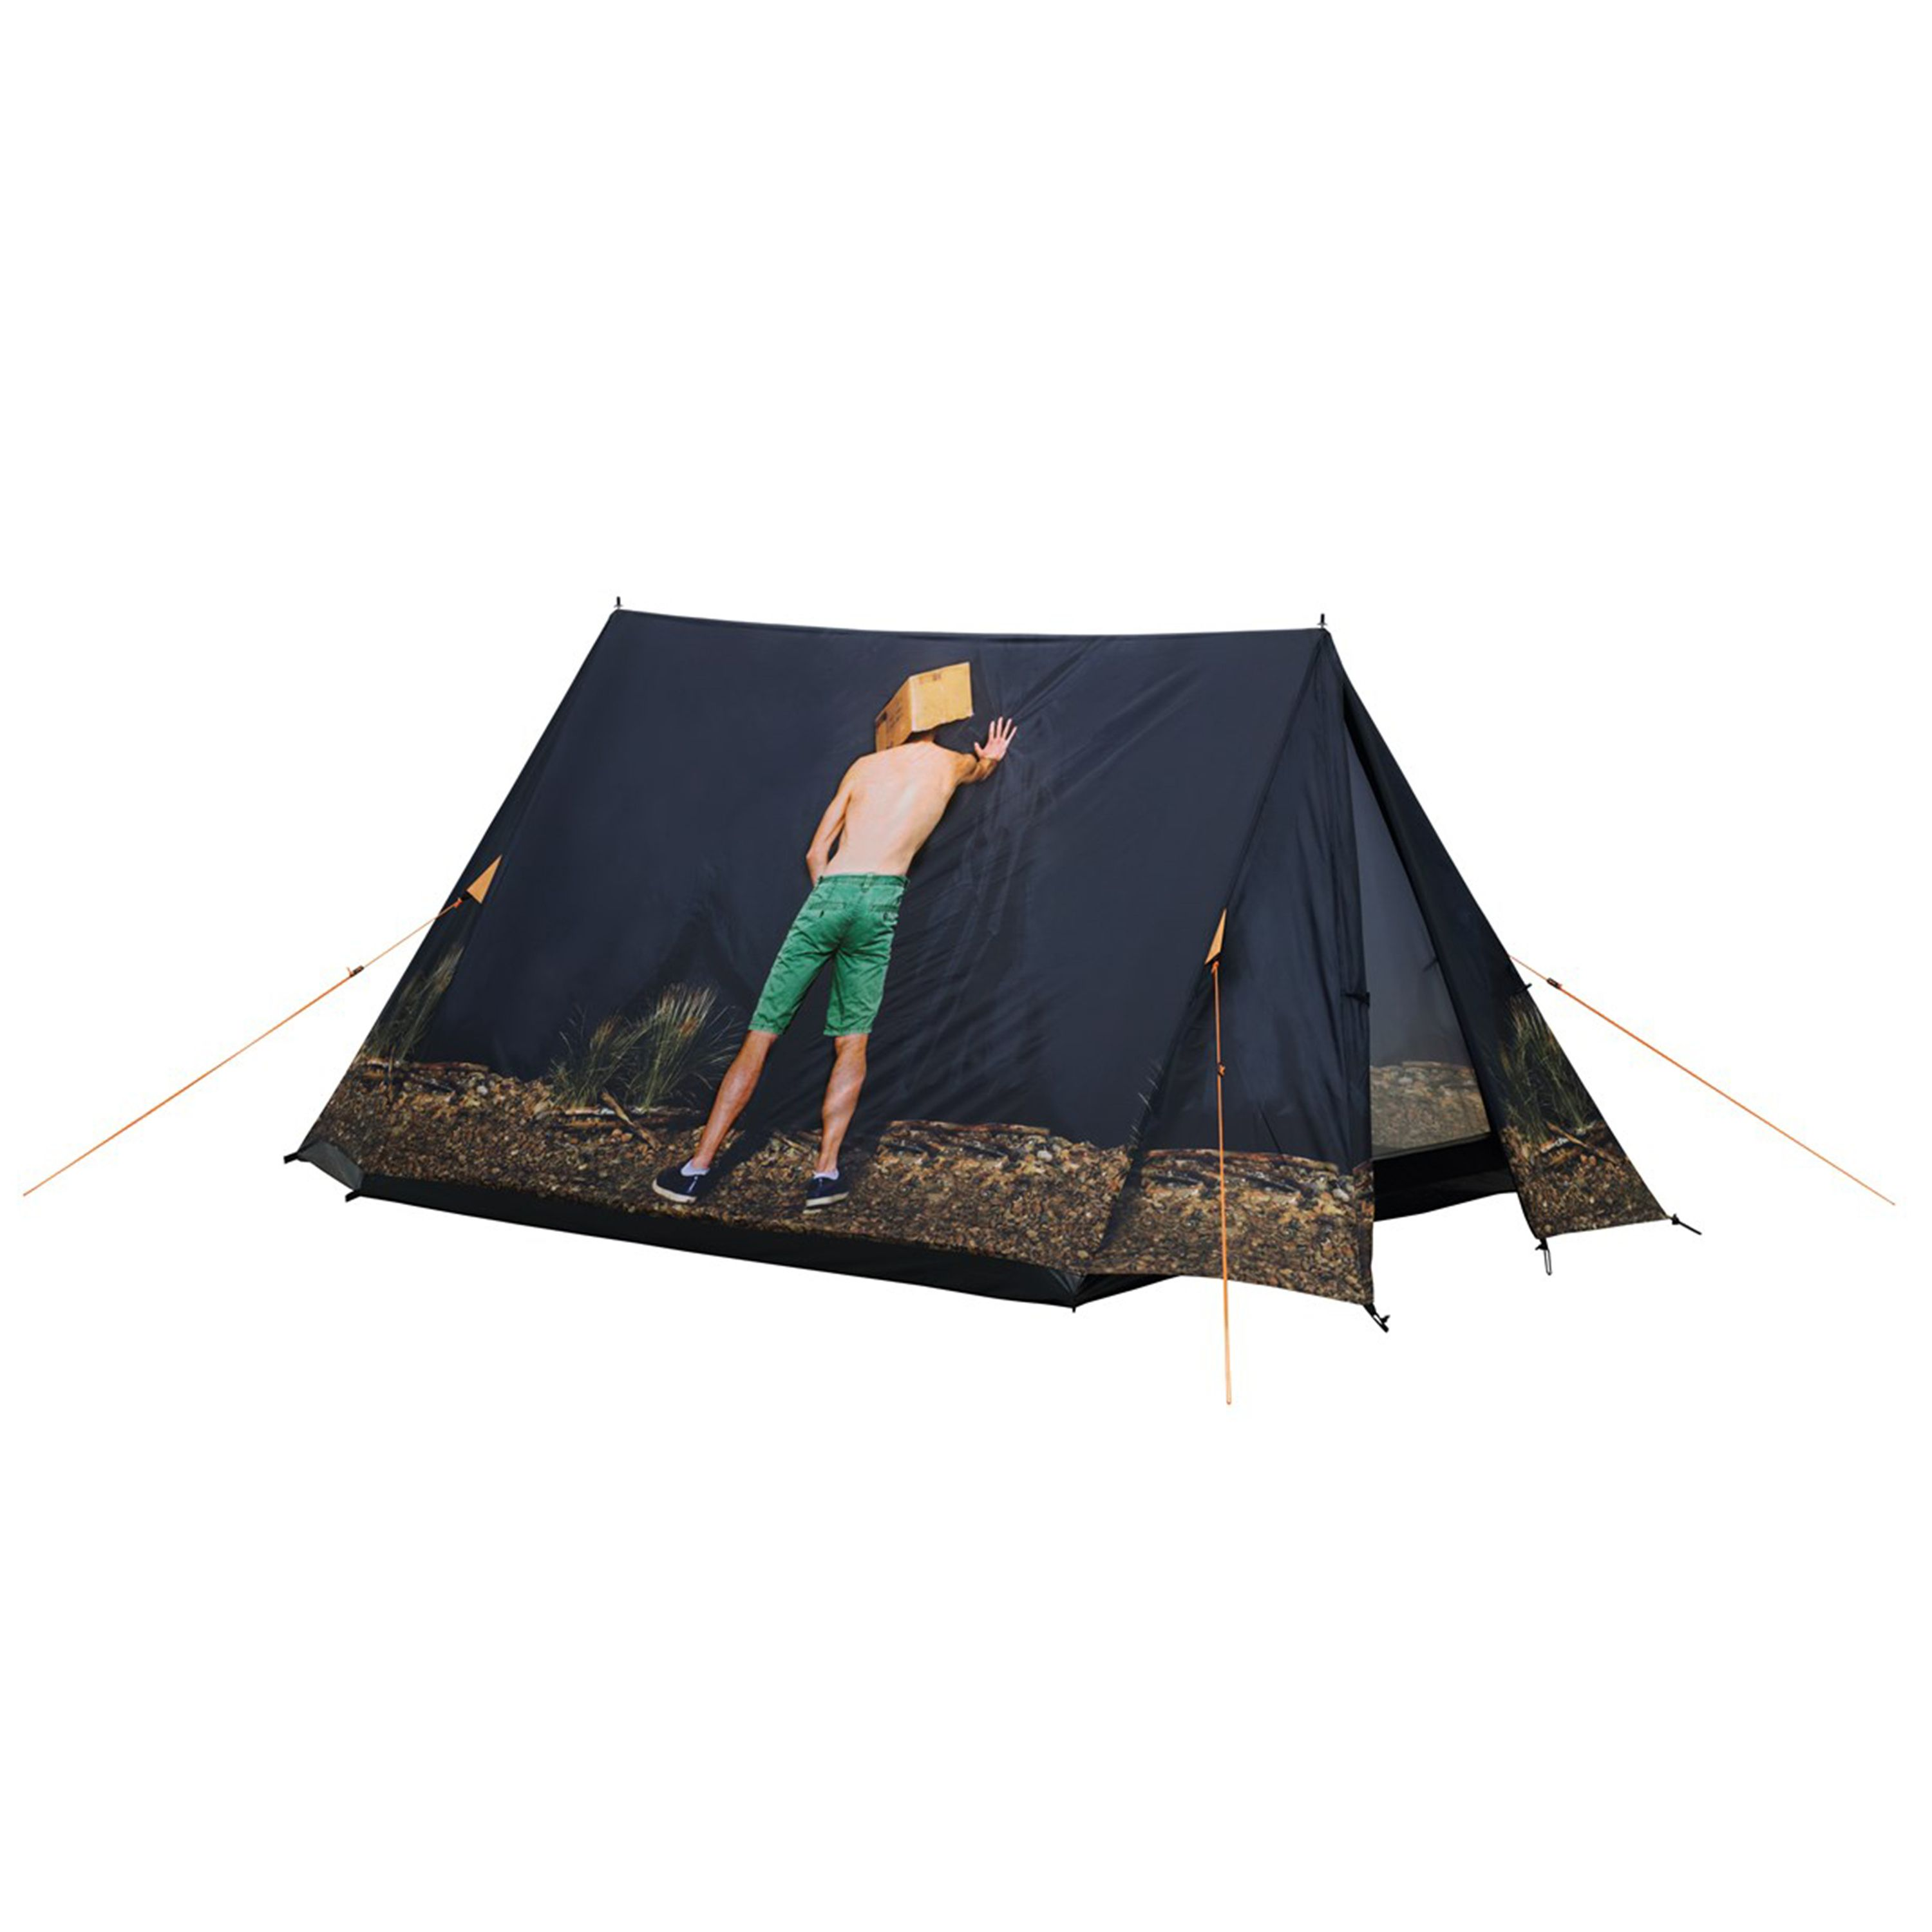 EASY CAMP Carnival Man Tent